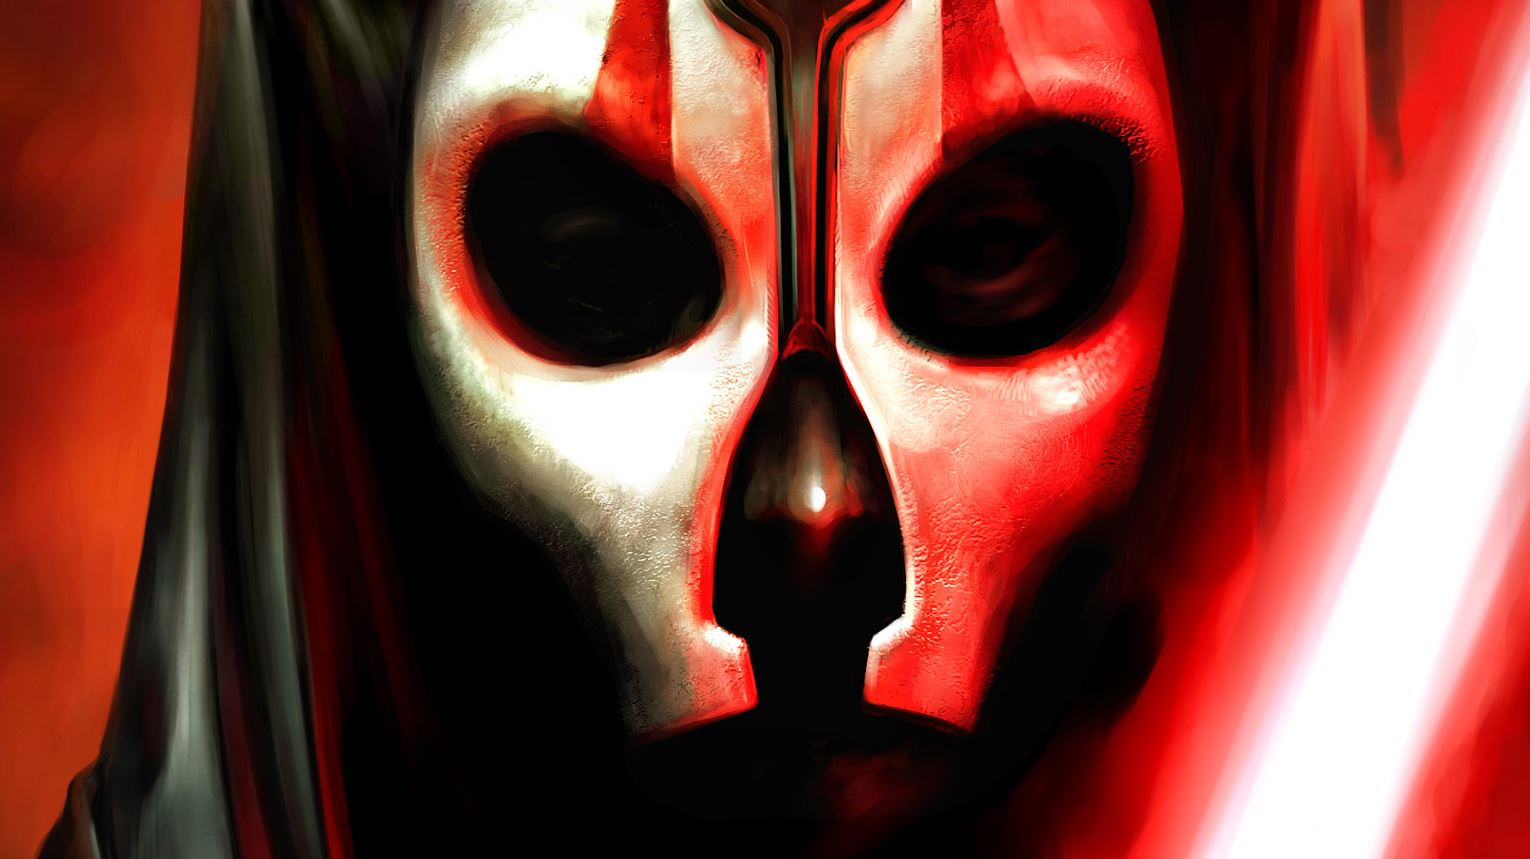 Former Xbox Exclusive Star Wars: Knights of the Old Republic Remakes